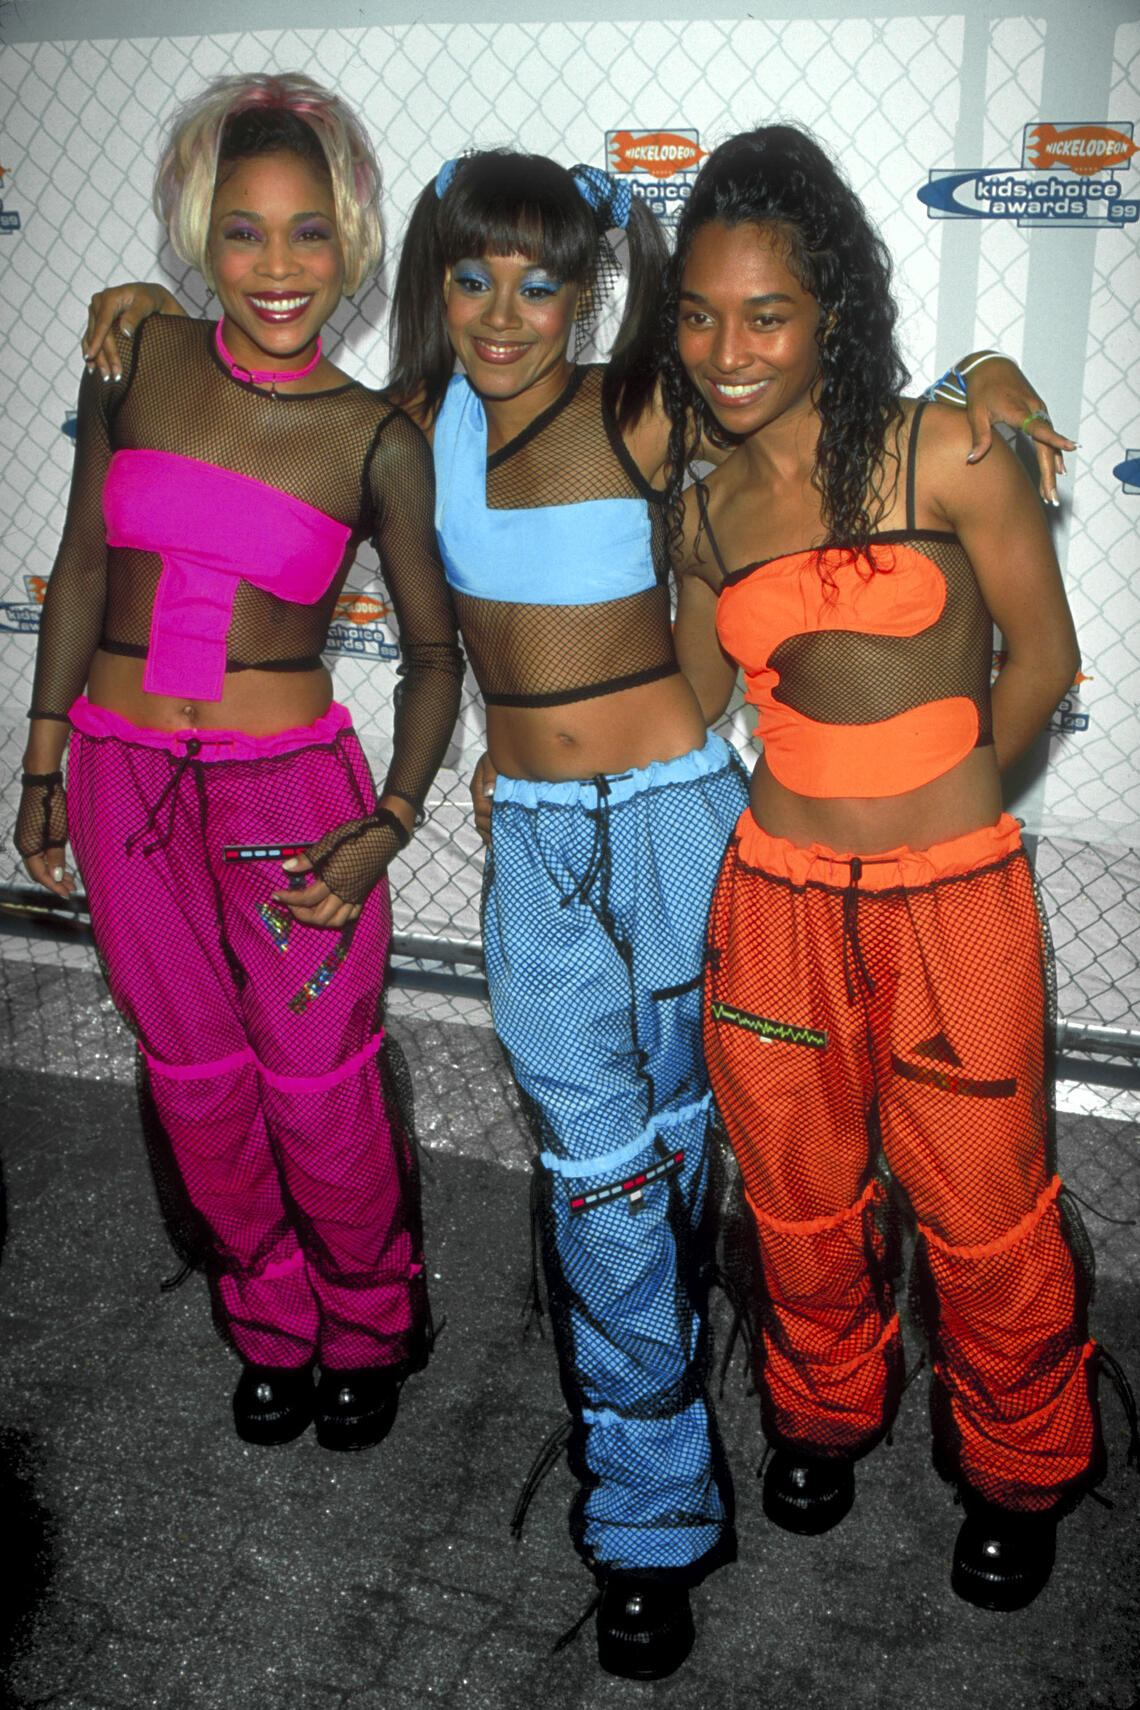 Music group TLC (L-R) Rozonda Chilli Thomas, Lisa Left Eye Lopes & Tionne T-Boz Watkins attending Nickelodeon Kids Choice '99 at UCLA.  (Photo by Mirek Towski/DMI/The LIFE Picture Collection via Getty Images/Getty Images)